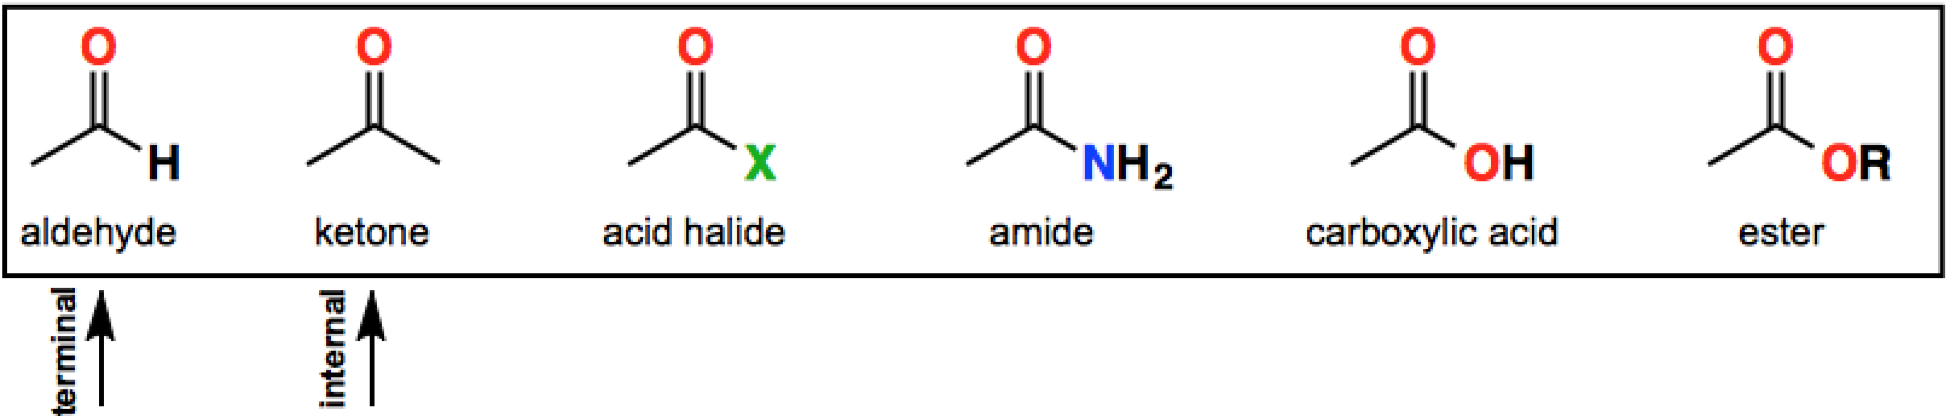 list-of-carbonyl-functional-groups